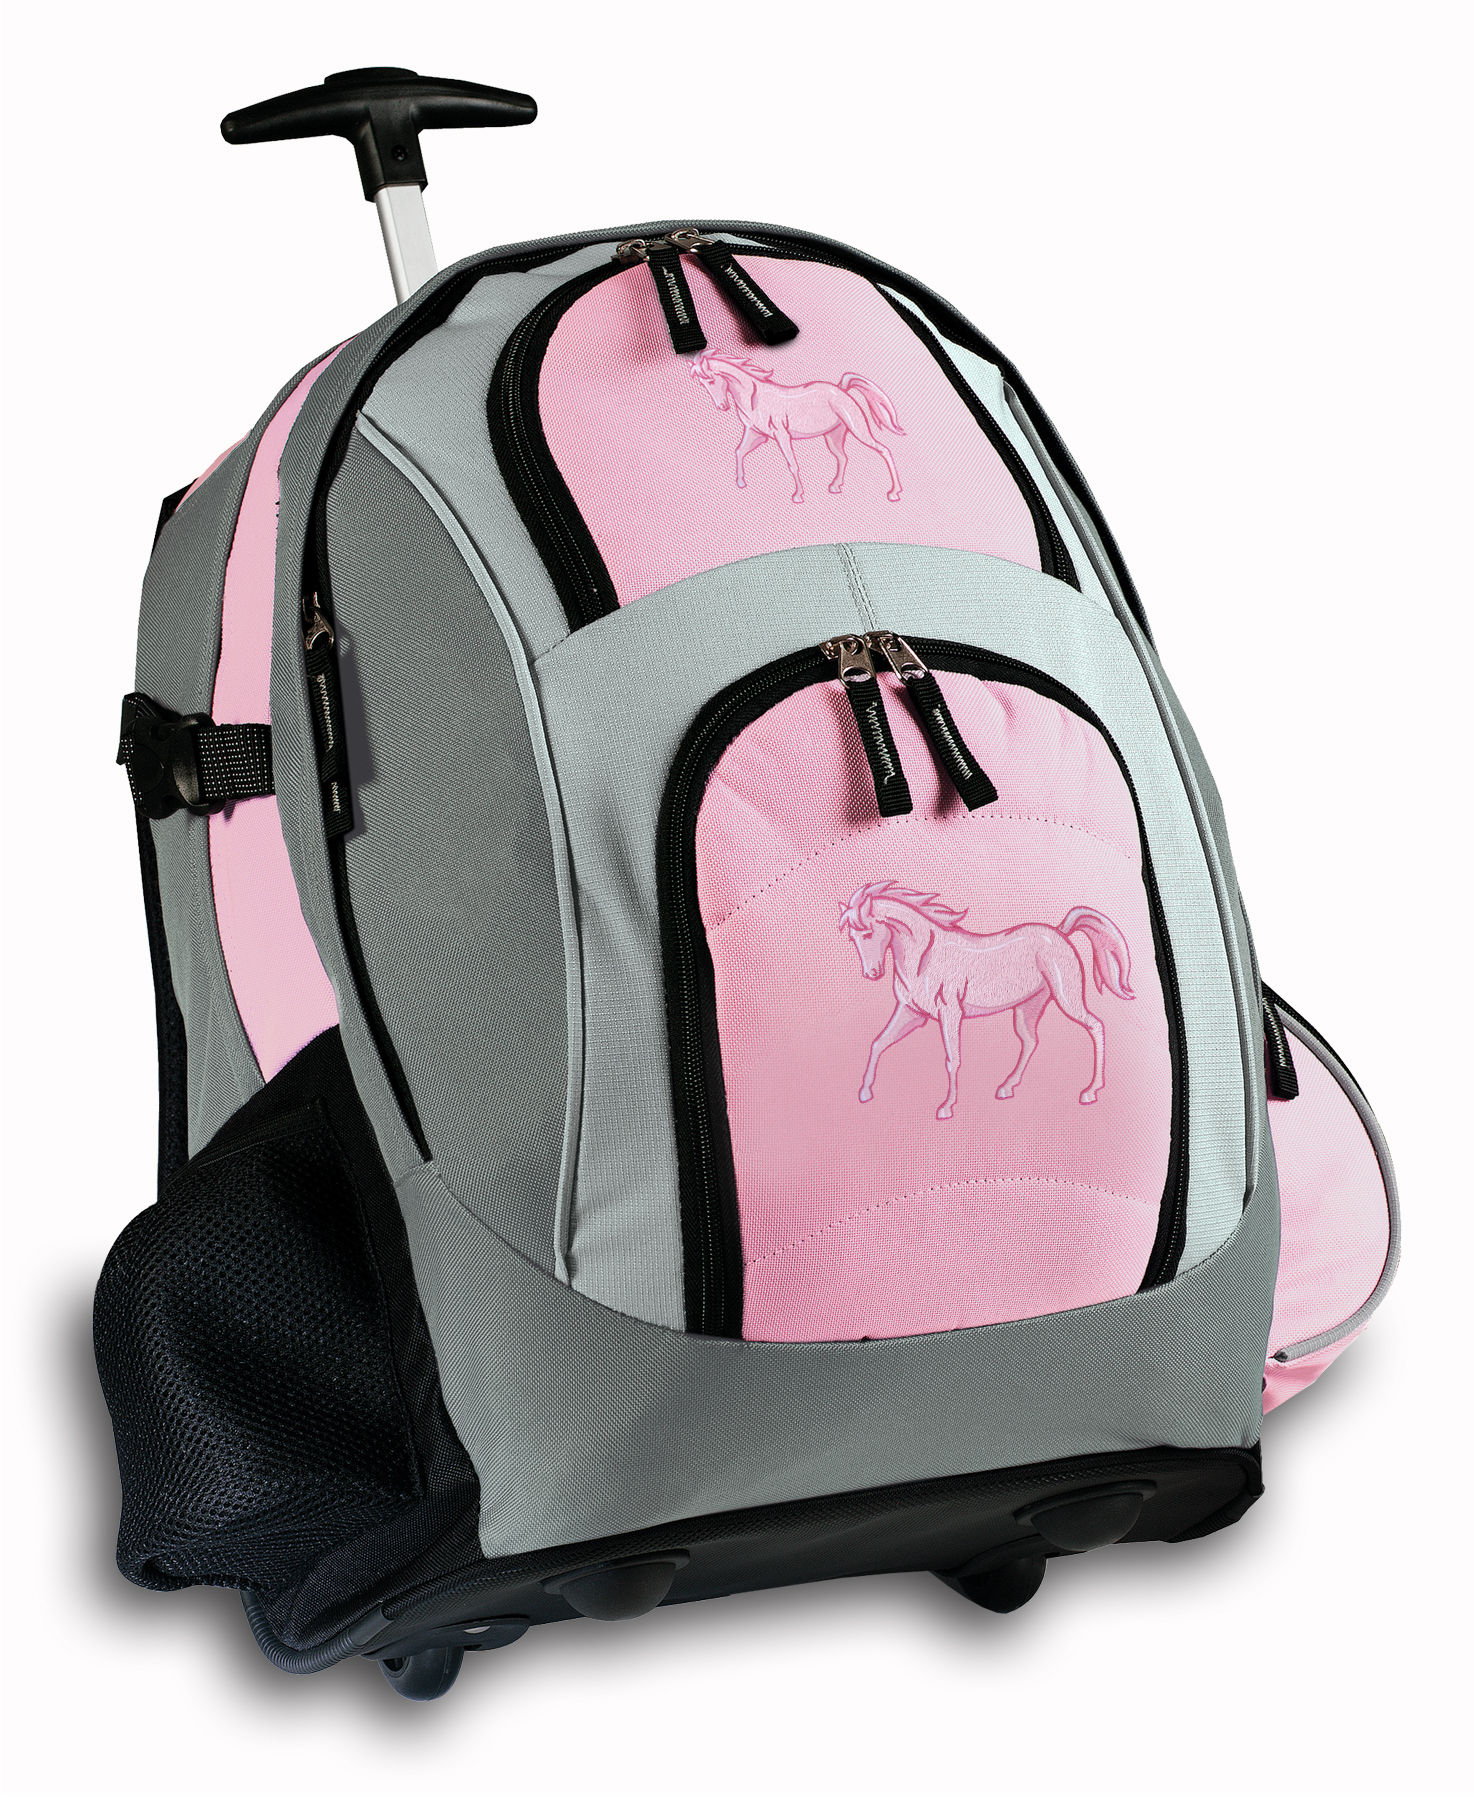 Roller Backpack For School R1leCE6X